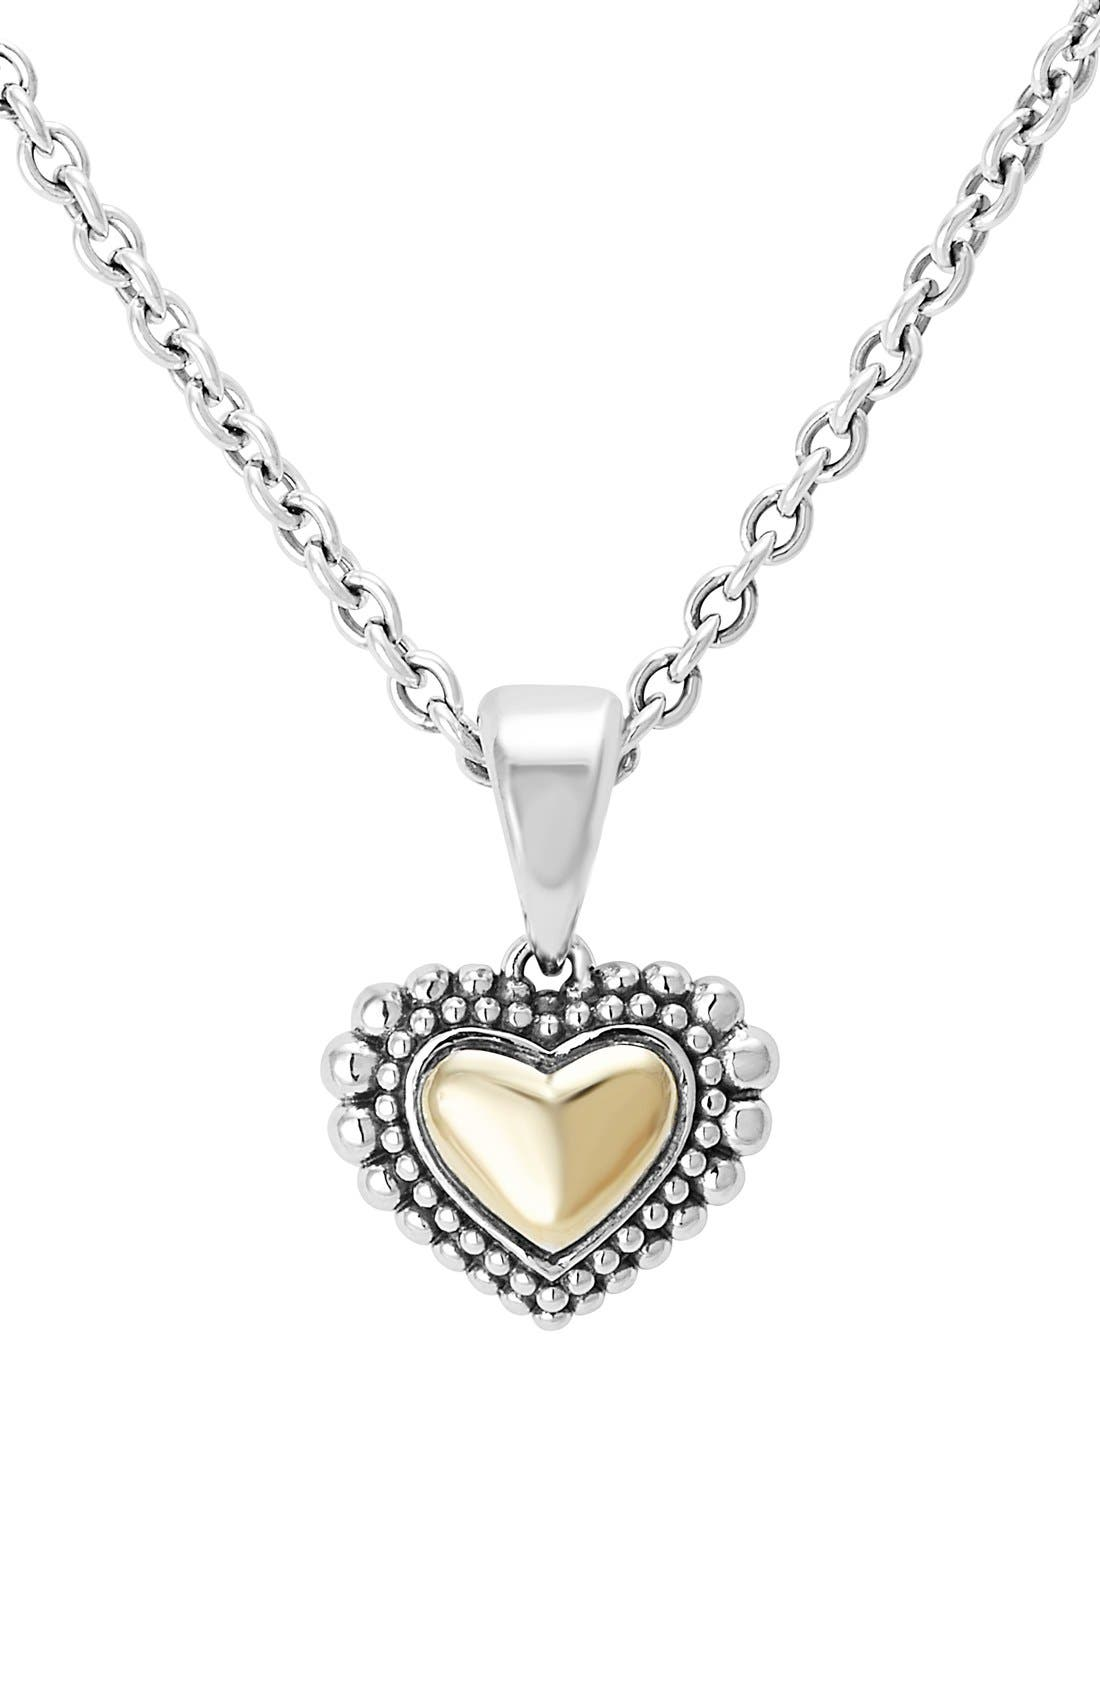 Main Image - LAGOS Two-Tone Heart Pendant Necklace